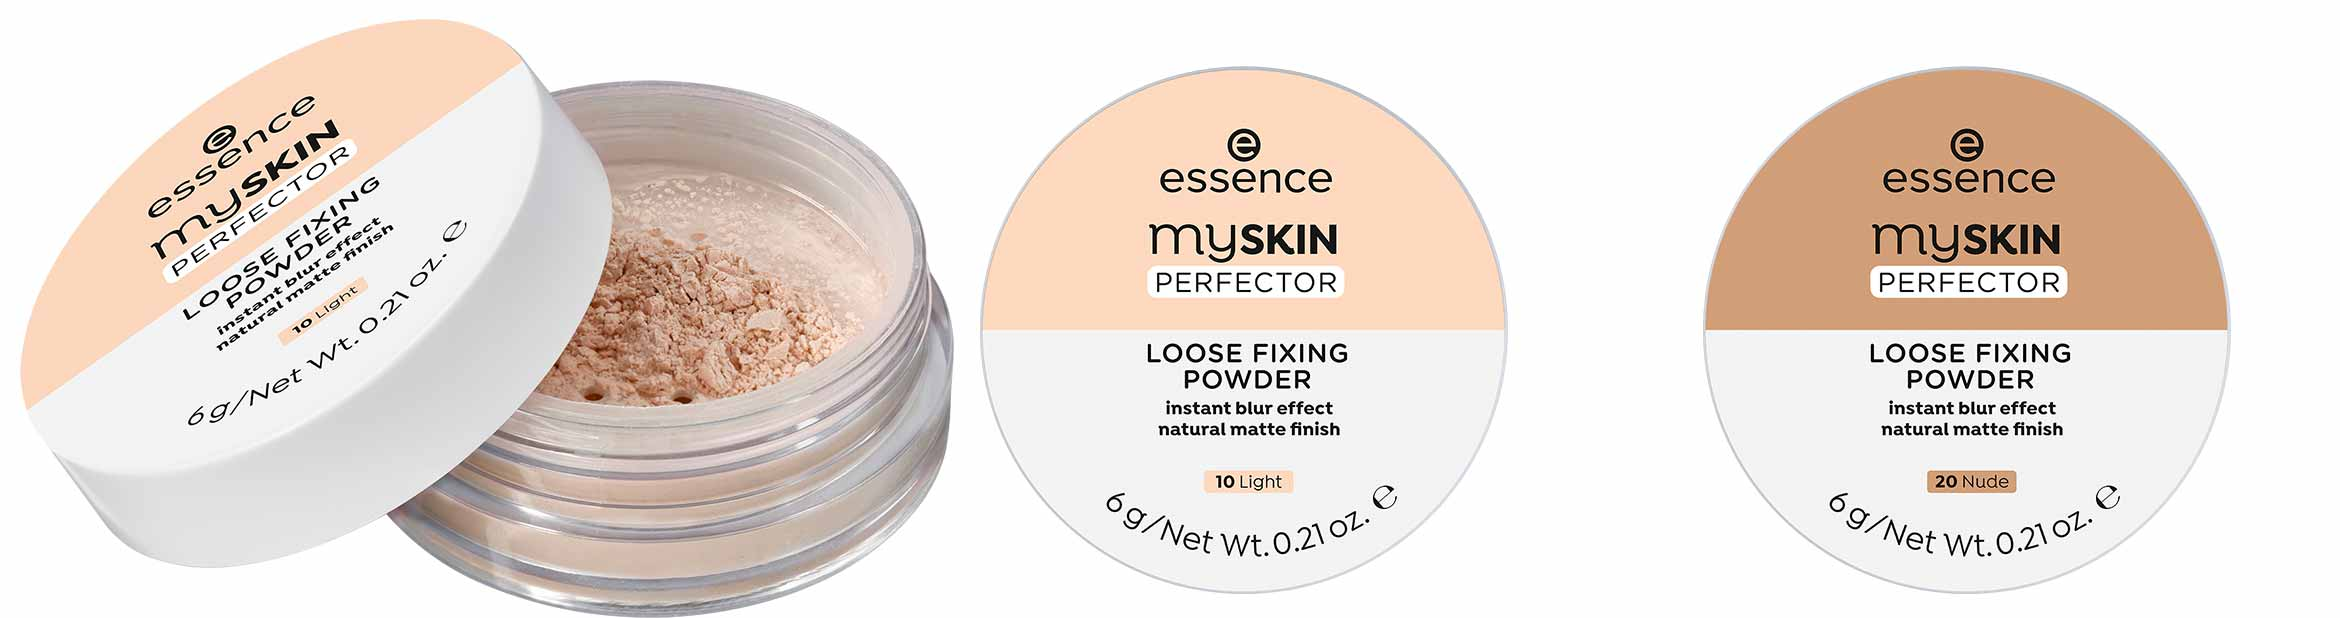 essence-my-skin-perfector-loose-fixing-powder